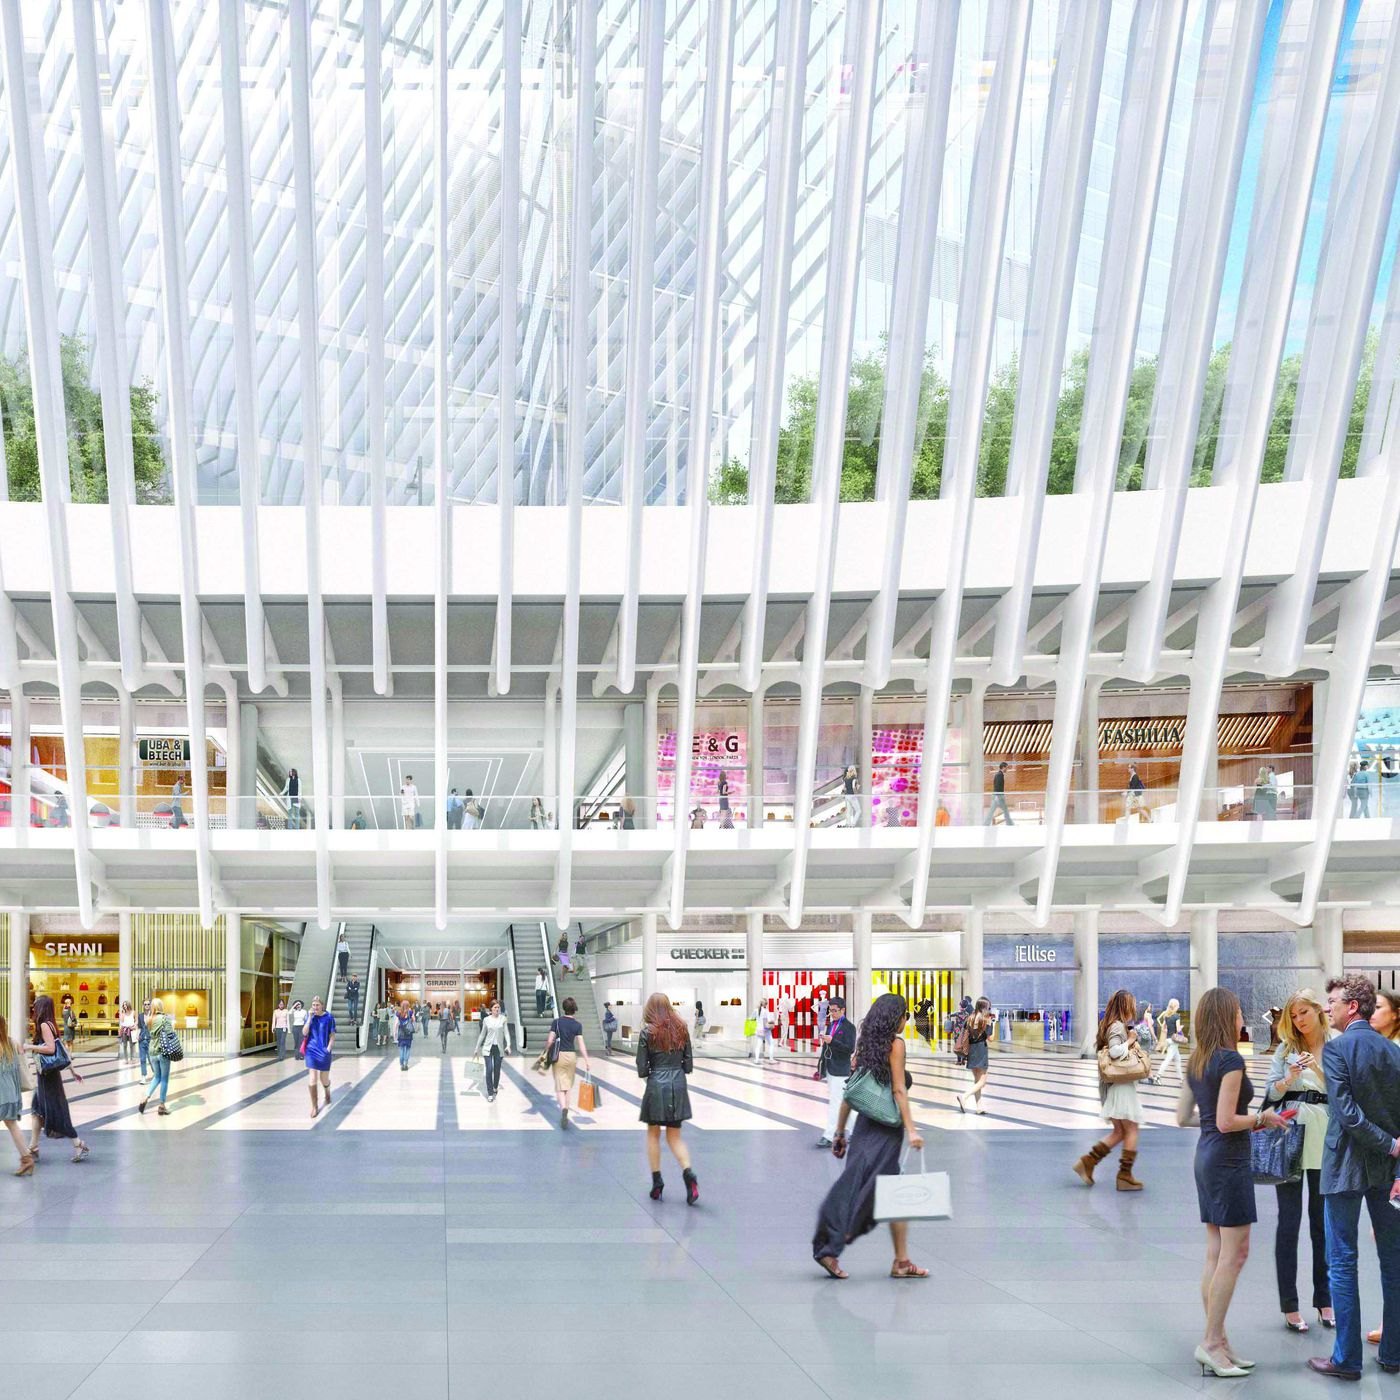 2ff9816b2 Here are 98 of the 125 World Trade Center Stores Opening in 2016 (Updated)  - Racked NY